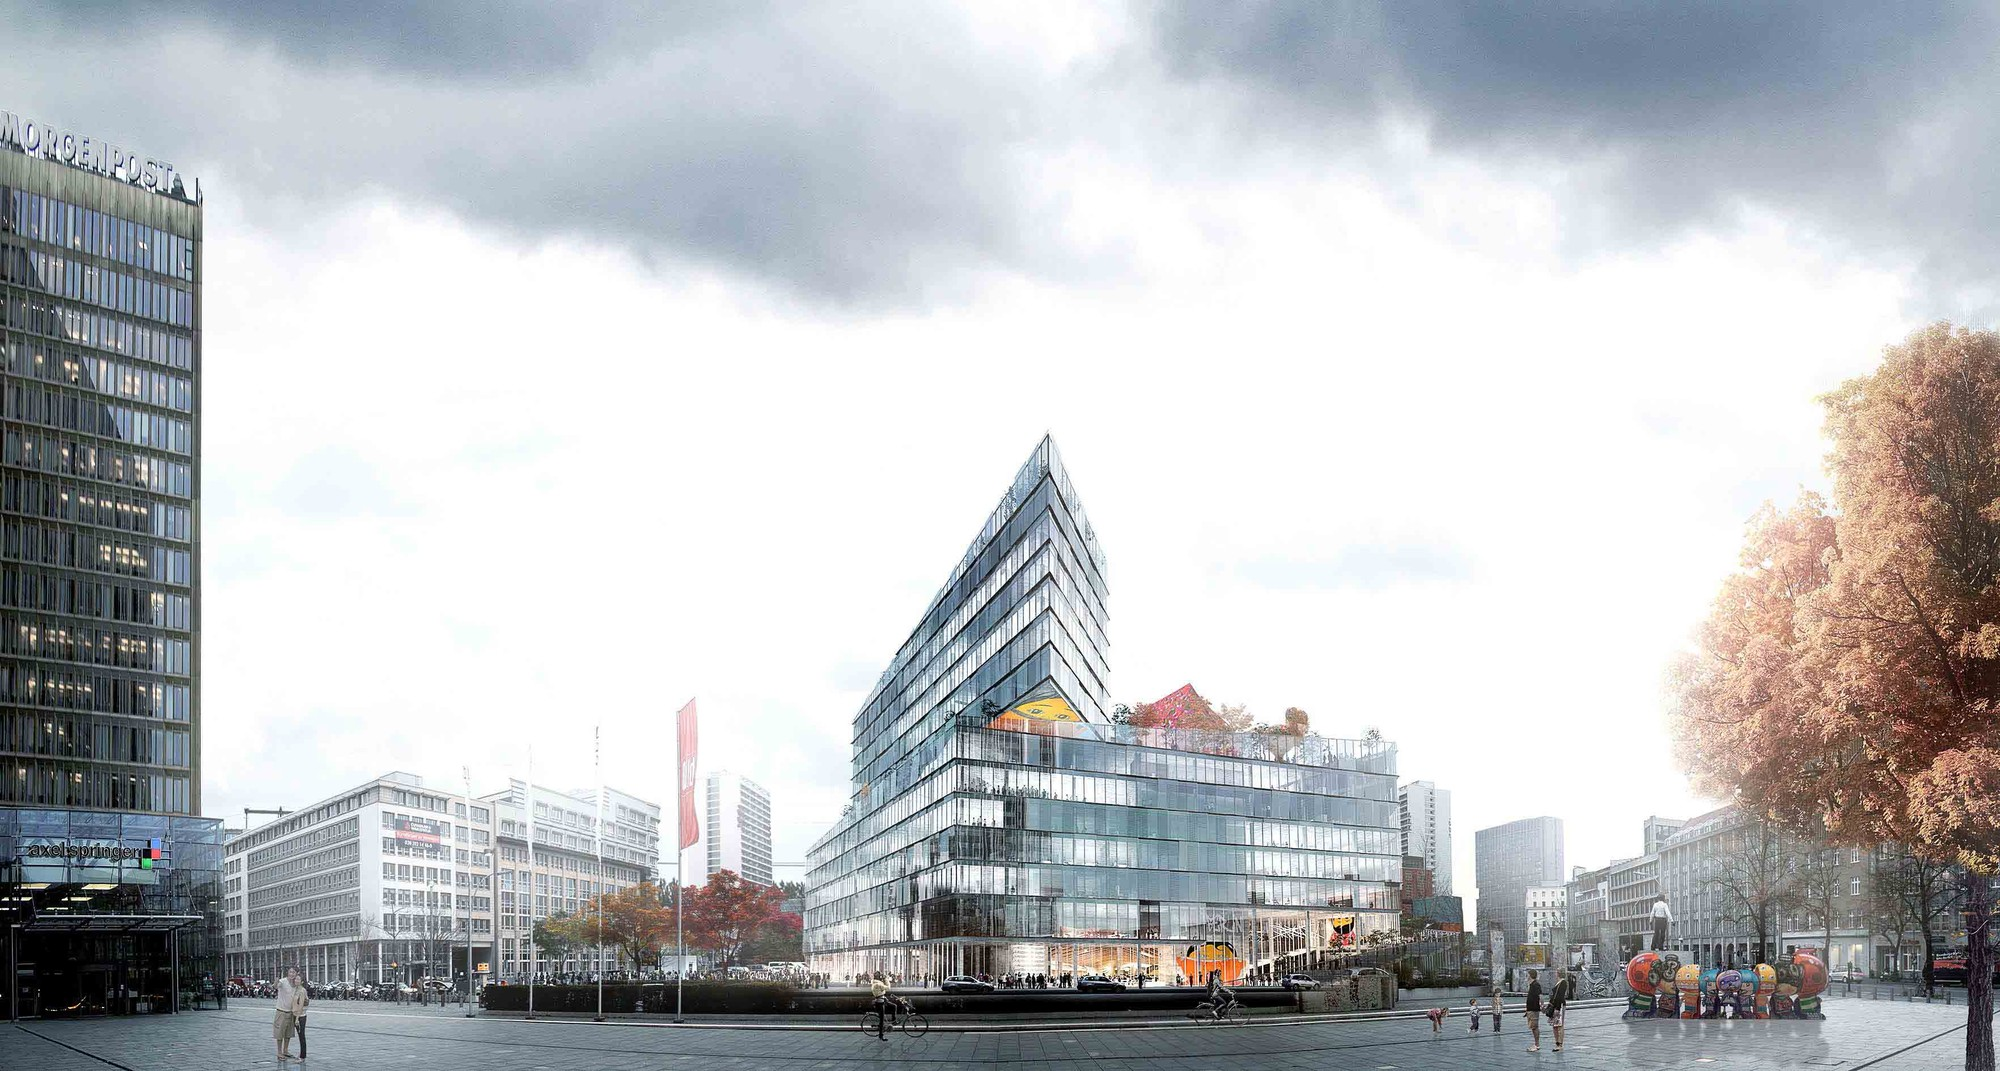 Proposal from BIG. Image © BIG-Bjarke Ingels Group